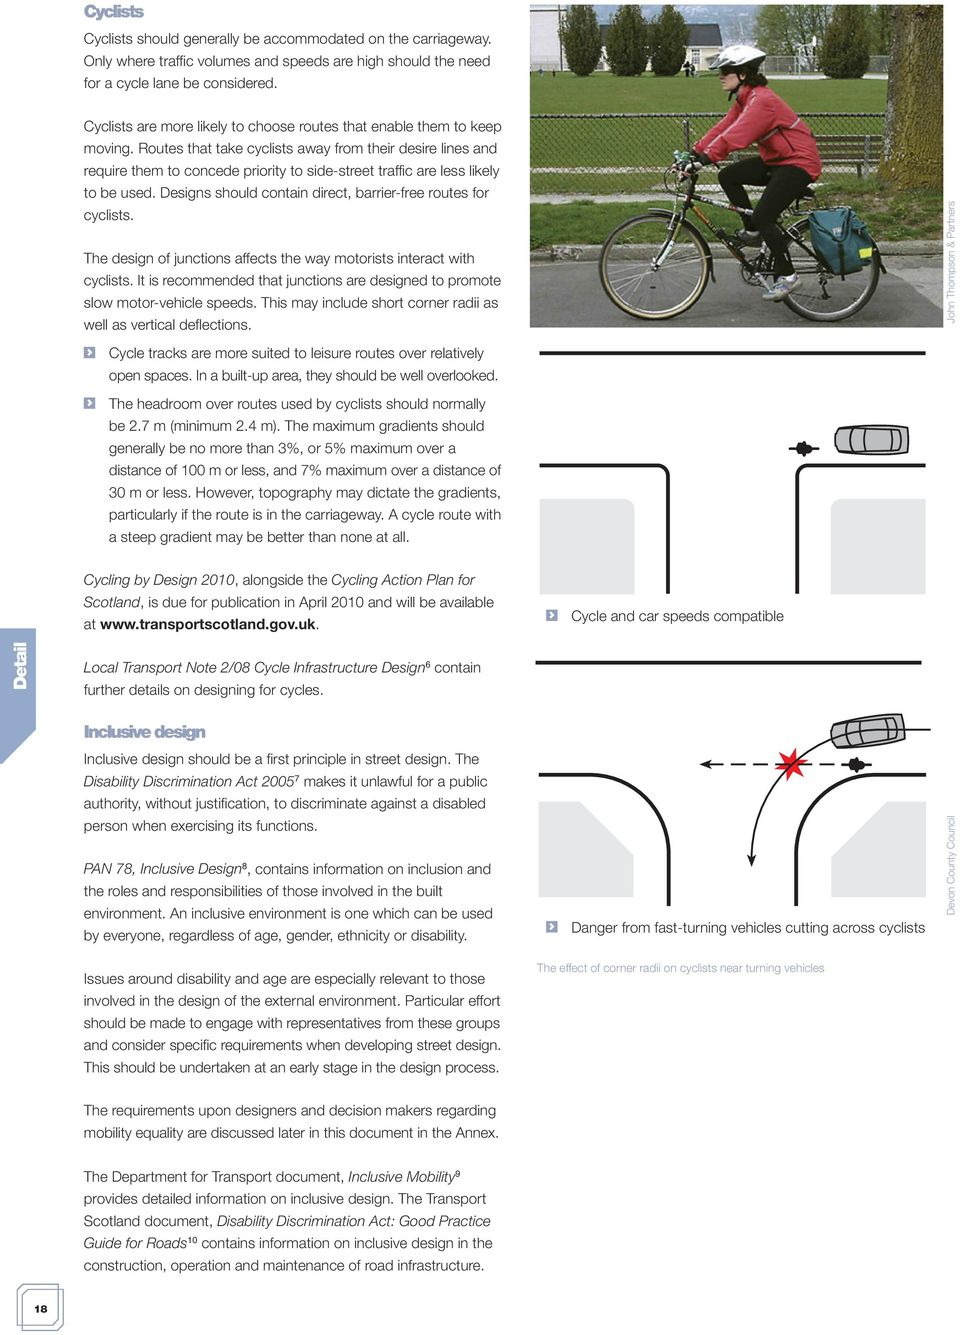 Routes that take cyclists away from their desire lines and require them to concede priority to side-street traffic are less likely to be used.